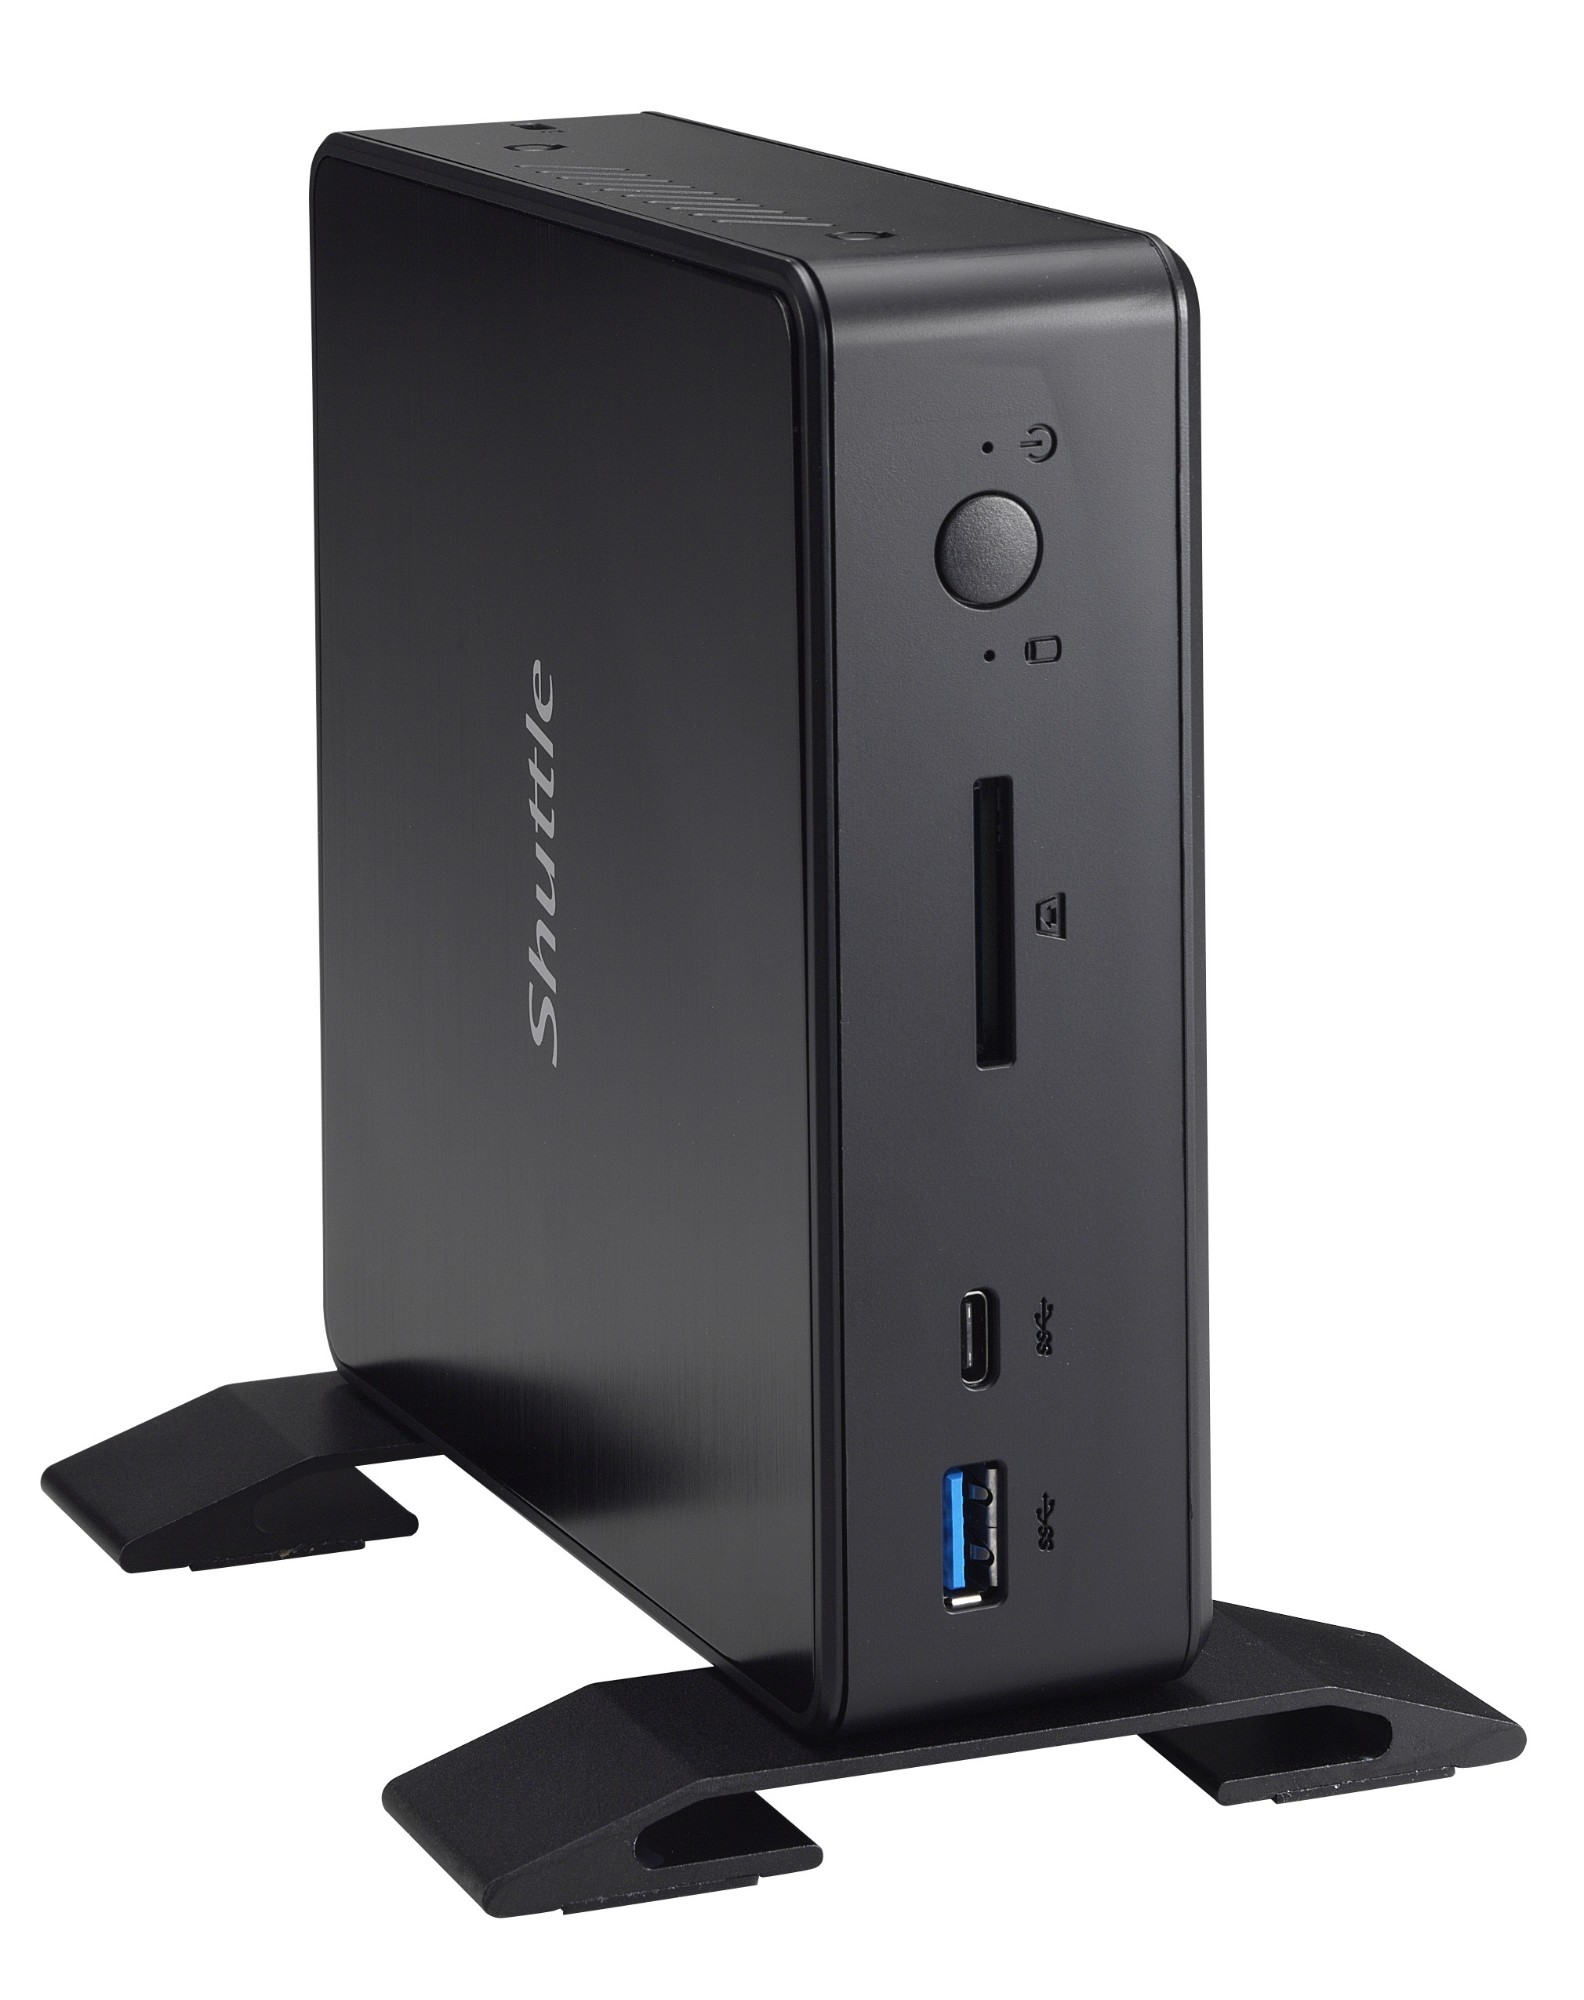 Shuttle XPC nano NC03U Intel SoC BGA 1356 1.8GHz 3865U Nettop Black PC/workstation barebone